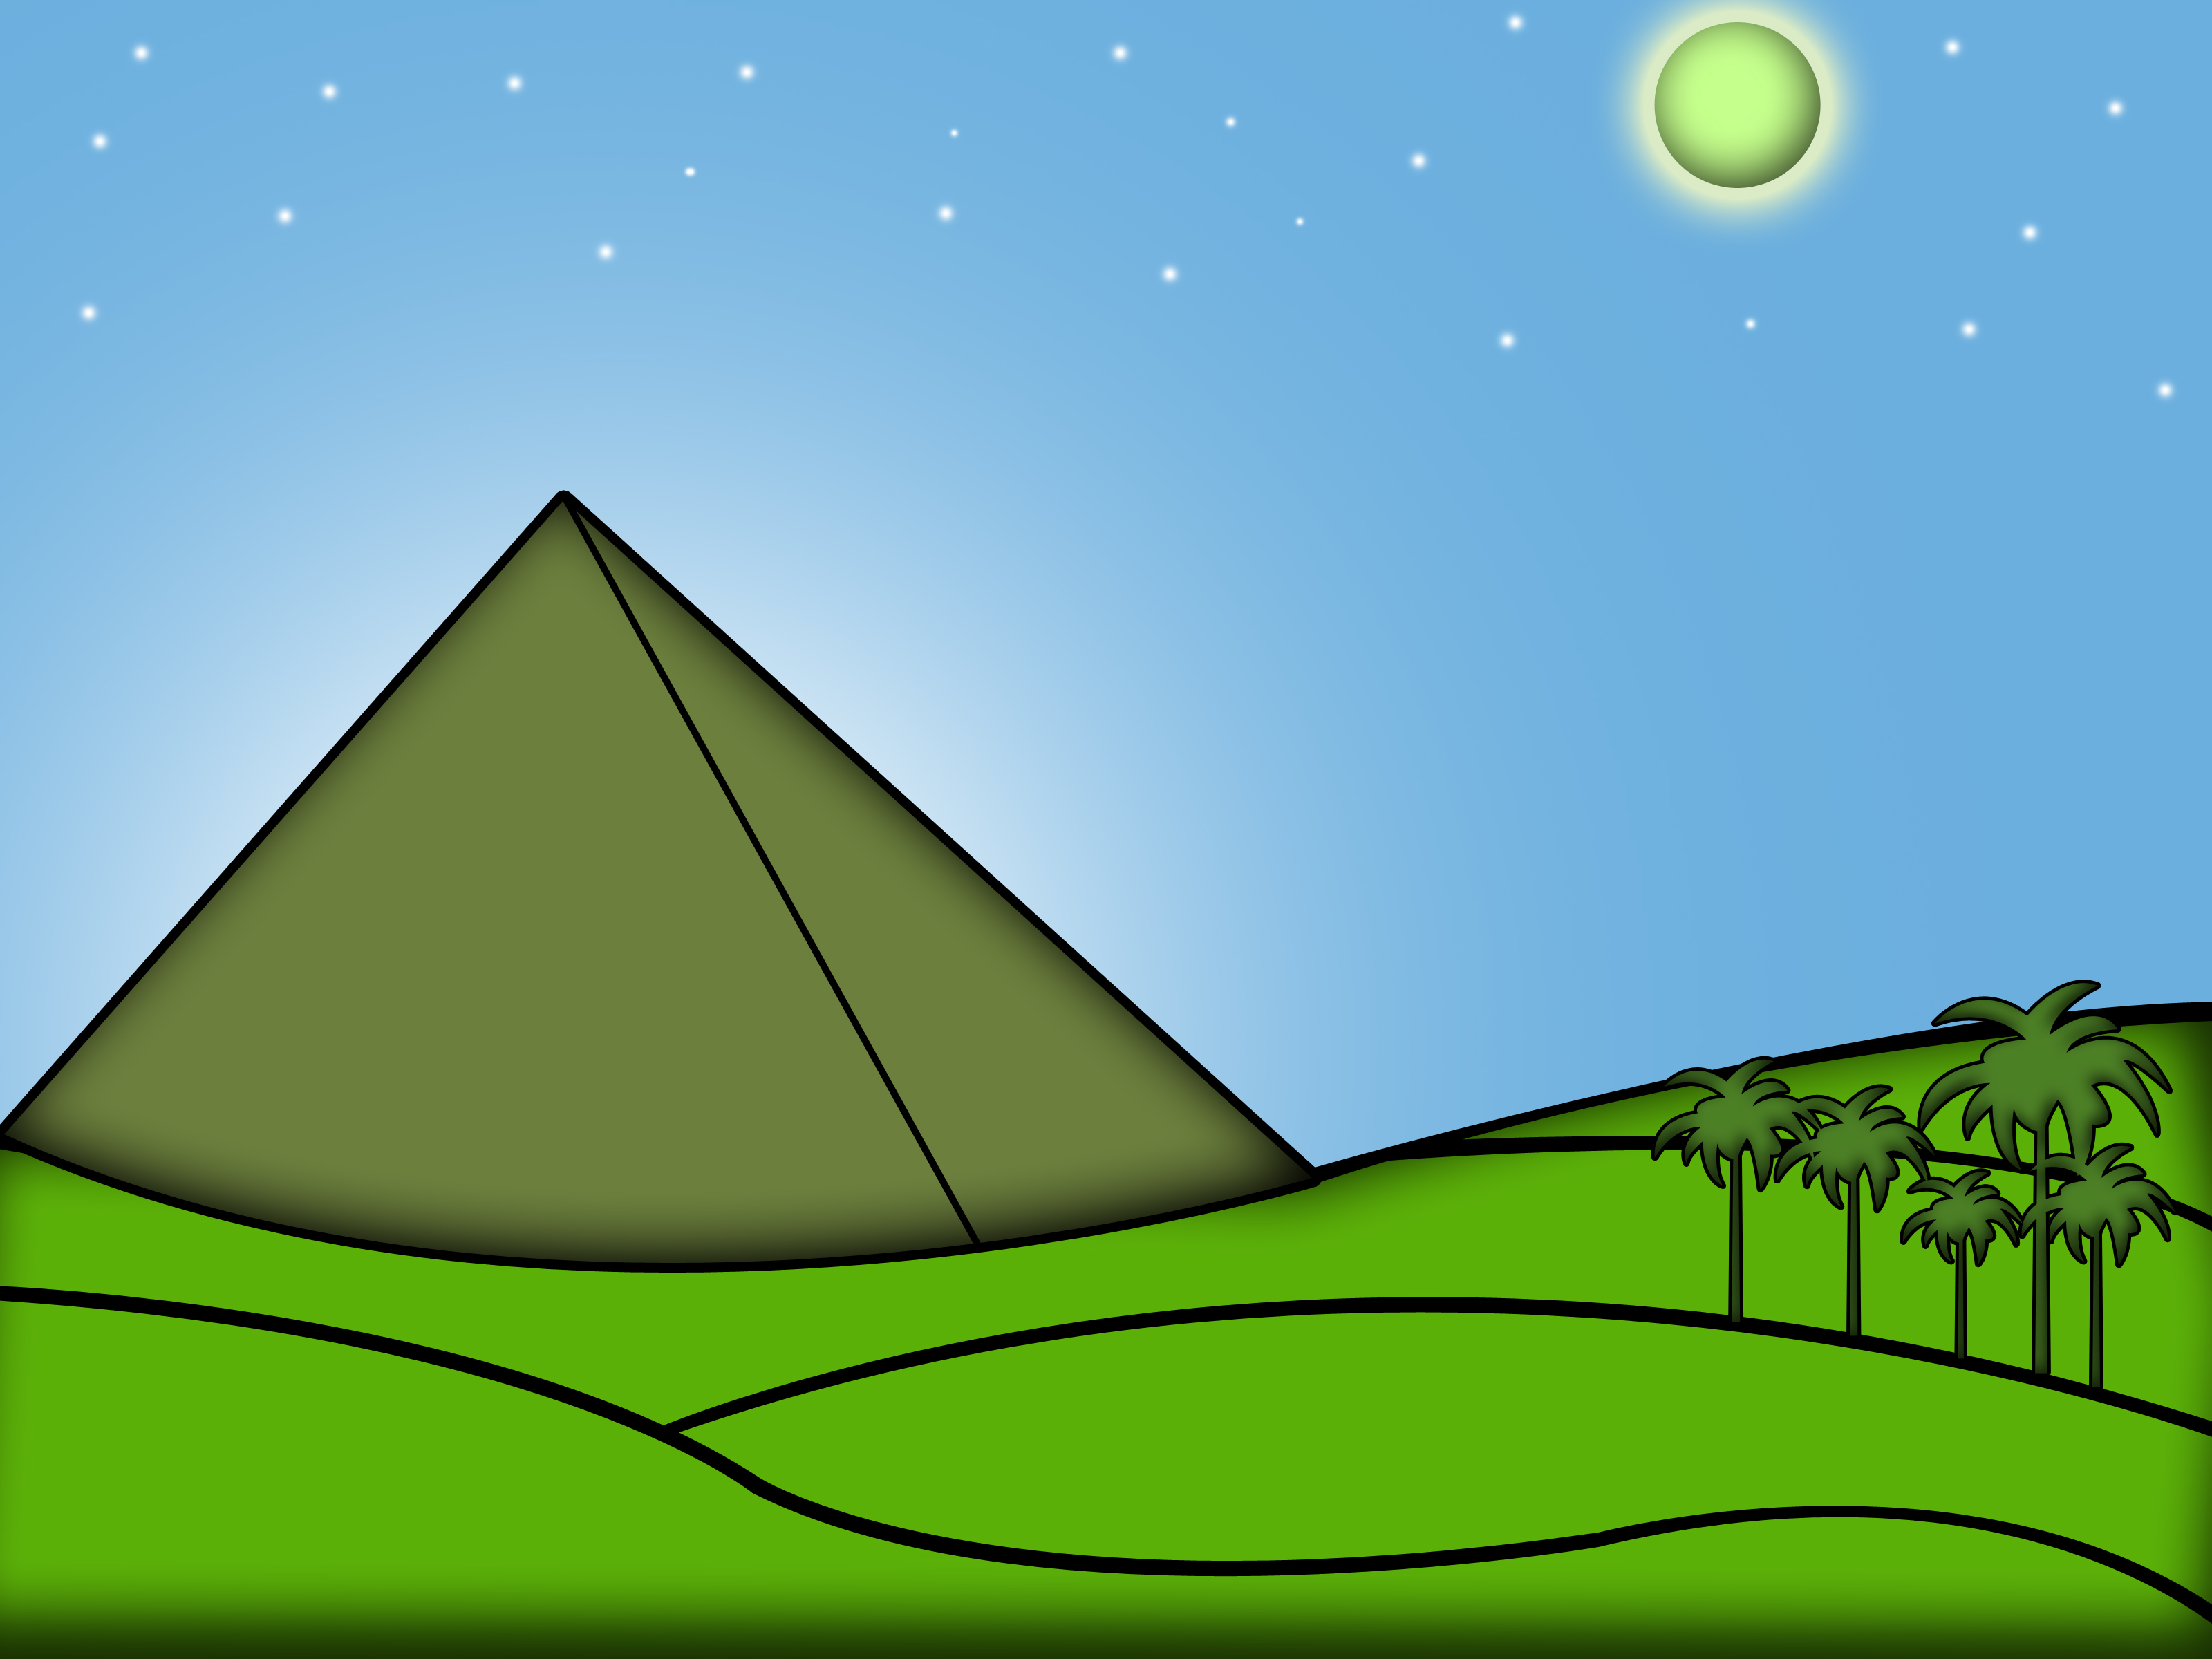 Drawn pyramid three (with Pictures) Pyramids:  the